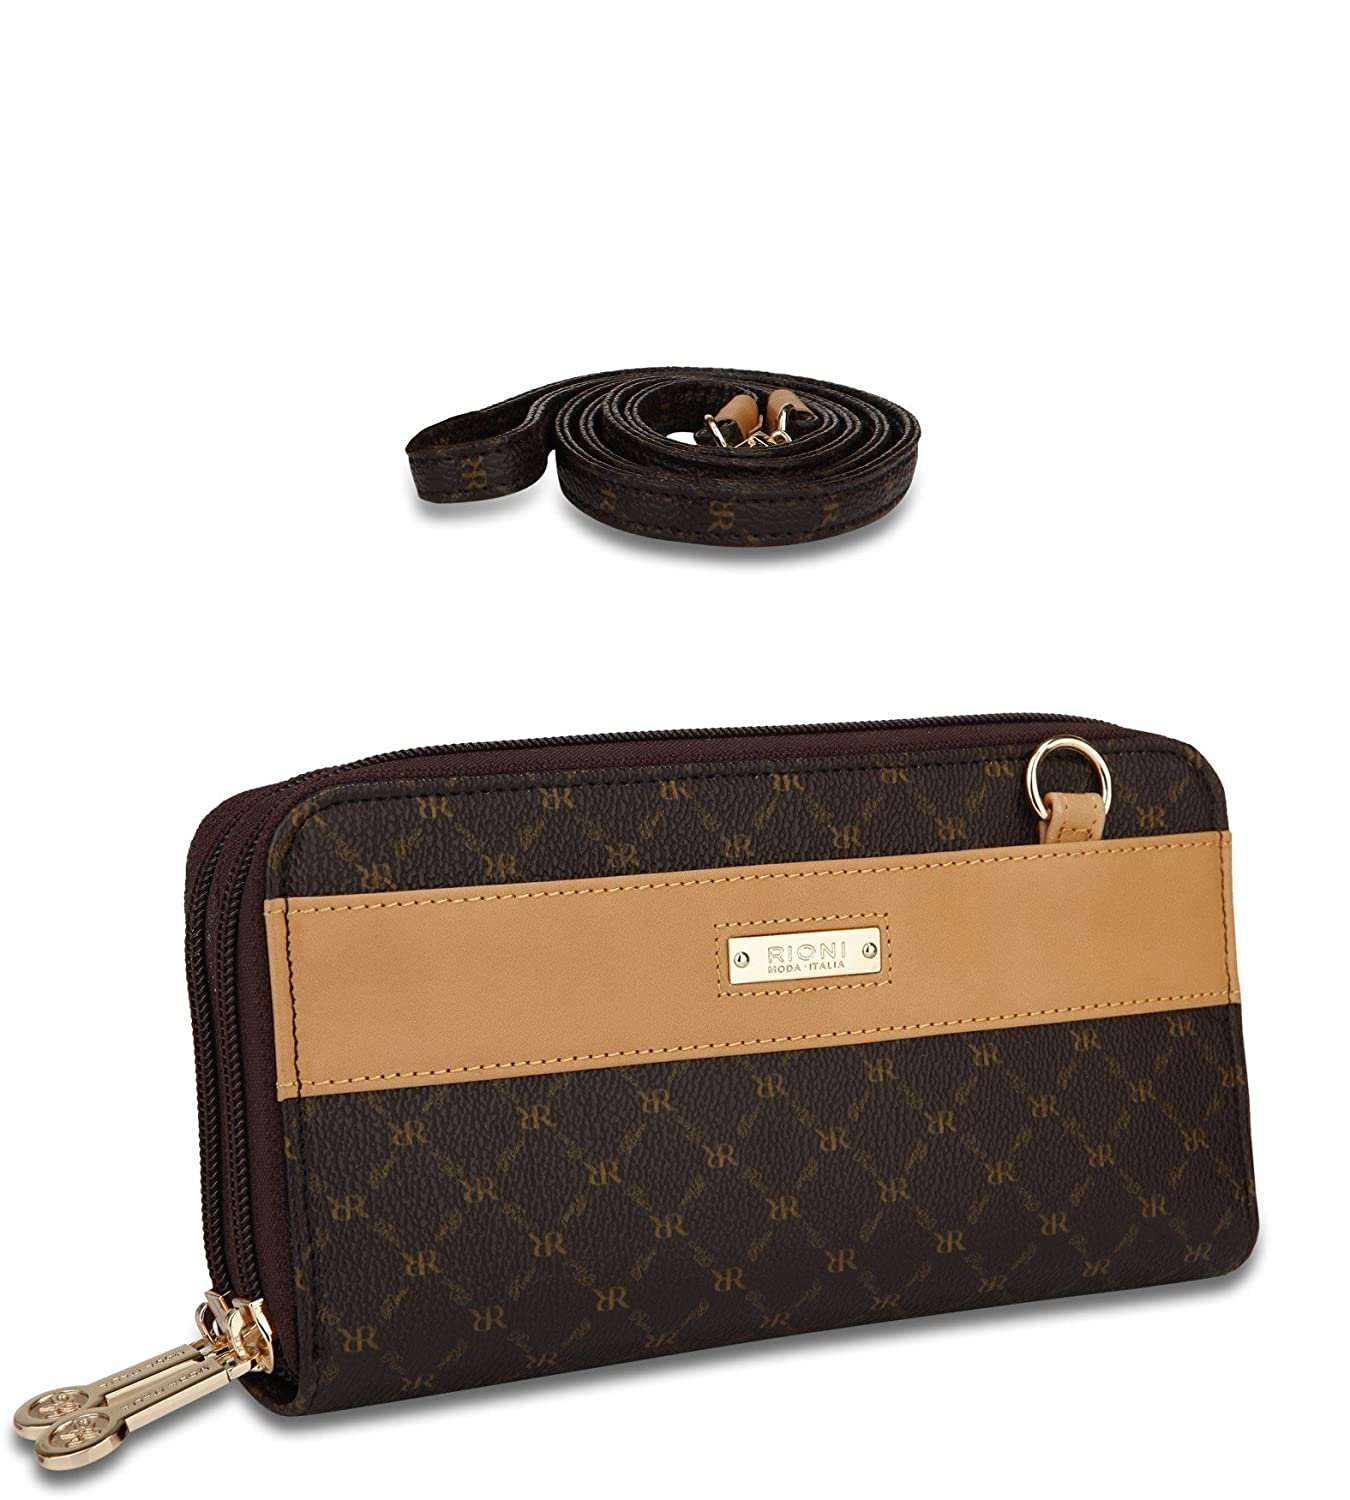 Signature Dual Zip Wallet Organizer by Rioni Designer Handbags /& Luggage